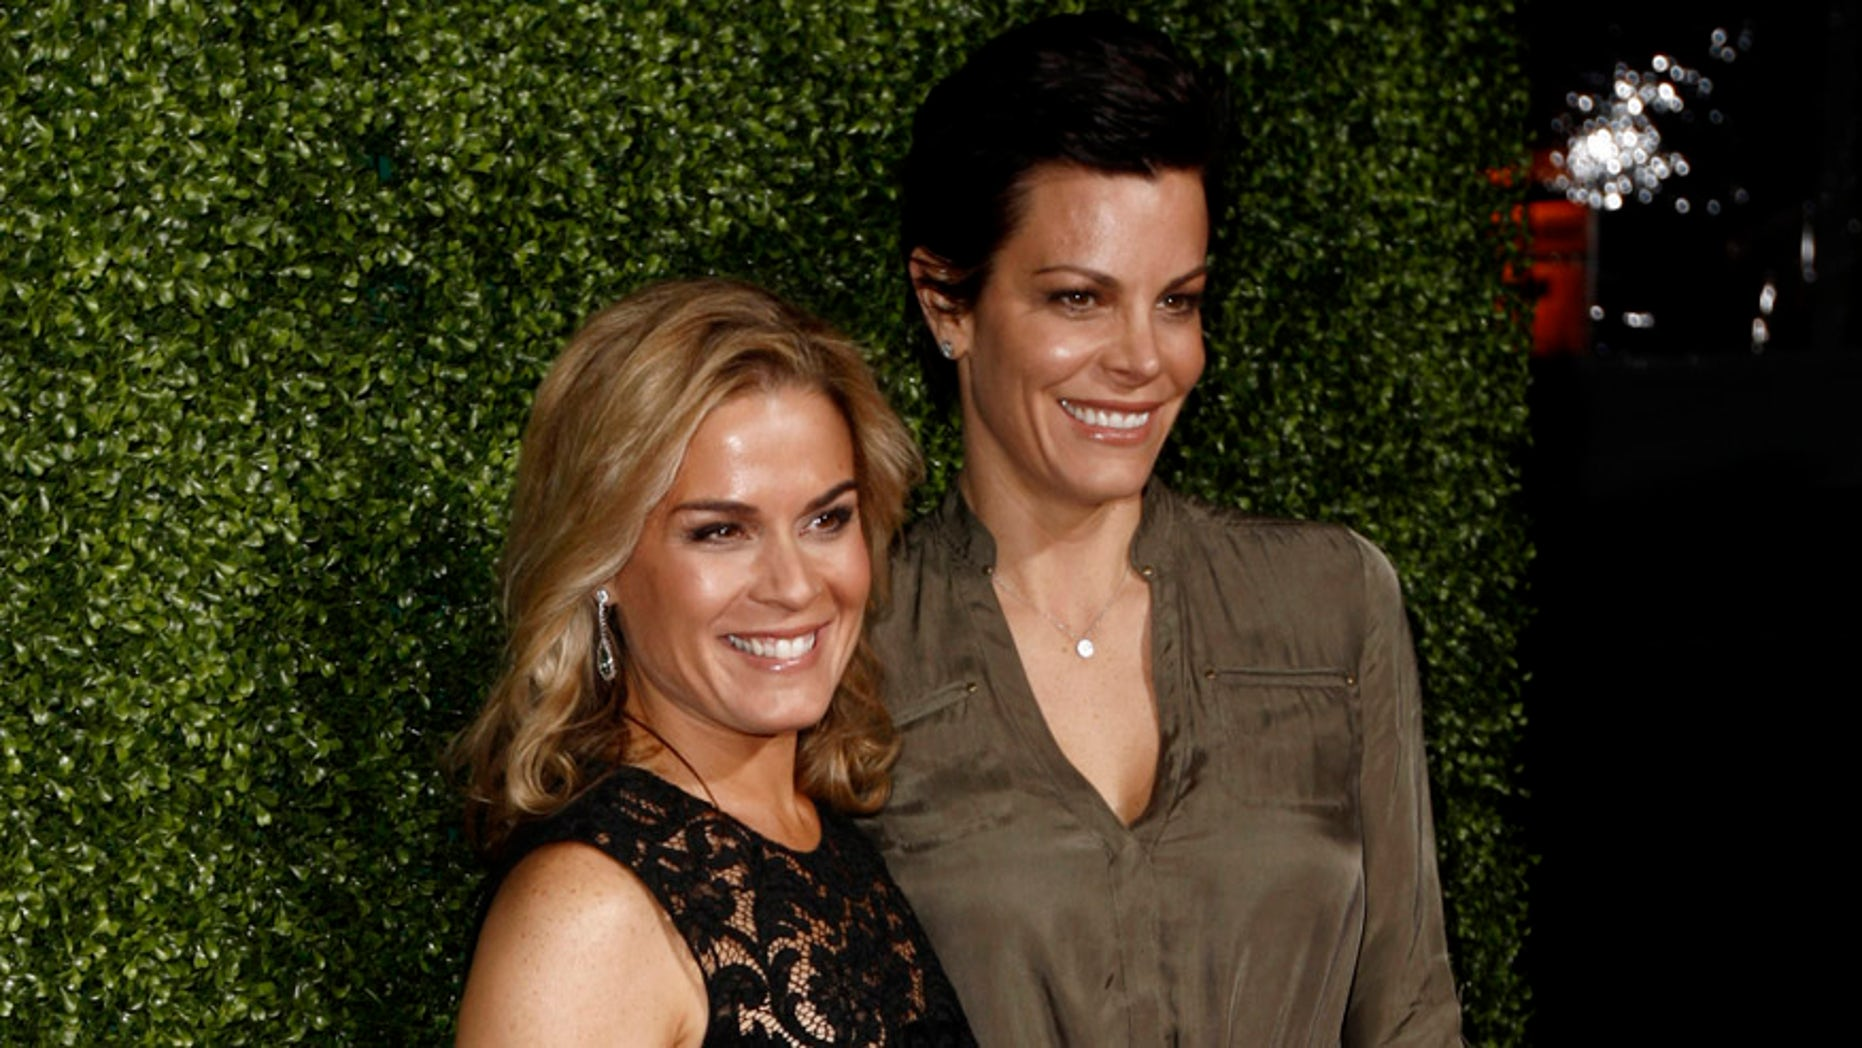 FILE - In this Jan. 6, 2011 file photo, Cat Cora, left, and Jennifer Cora arrive at the Oprah Winfrey Network Television Critics Association 2011 Winter Press Tour Cocktail Reception in Pasadena, Calif. Cat Cora announced Monday, Nov. 9, 2015, that she and her partner of 17 years, Jennifer Cora, are divorcing and plan to jointly raise their four sons. Court records in Santa Barbara, California, show the pair filed for divorce in late October 2015. (AP Photo/Matt Sayles, File)